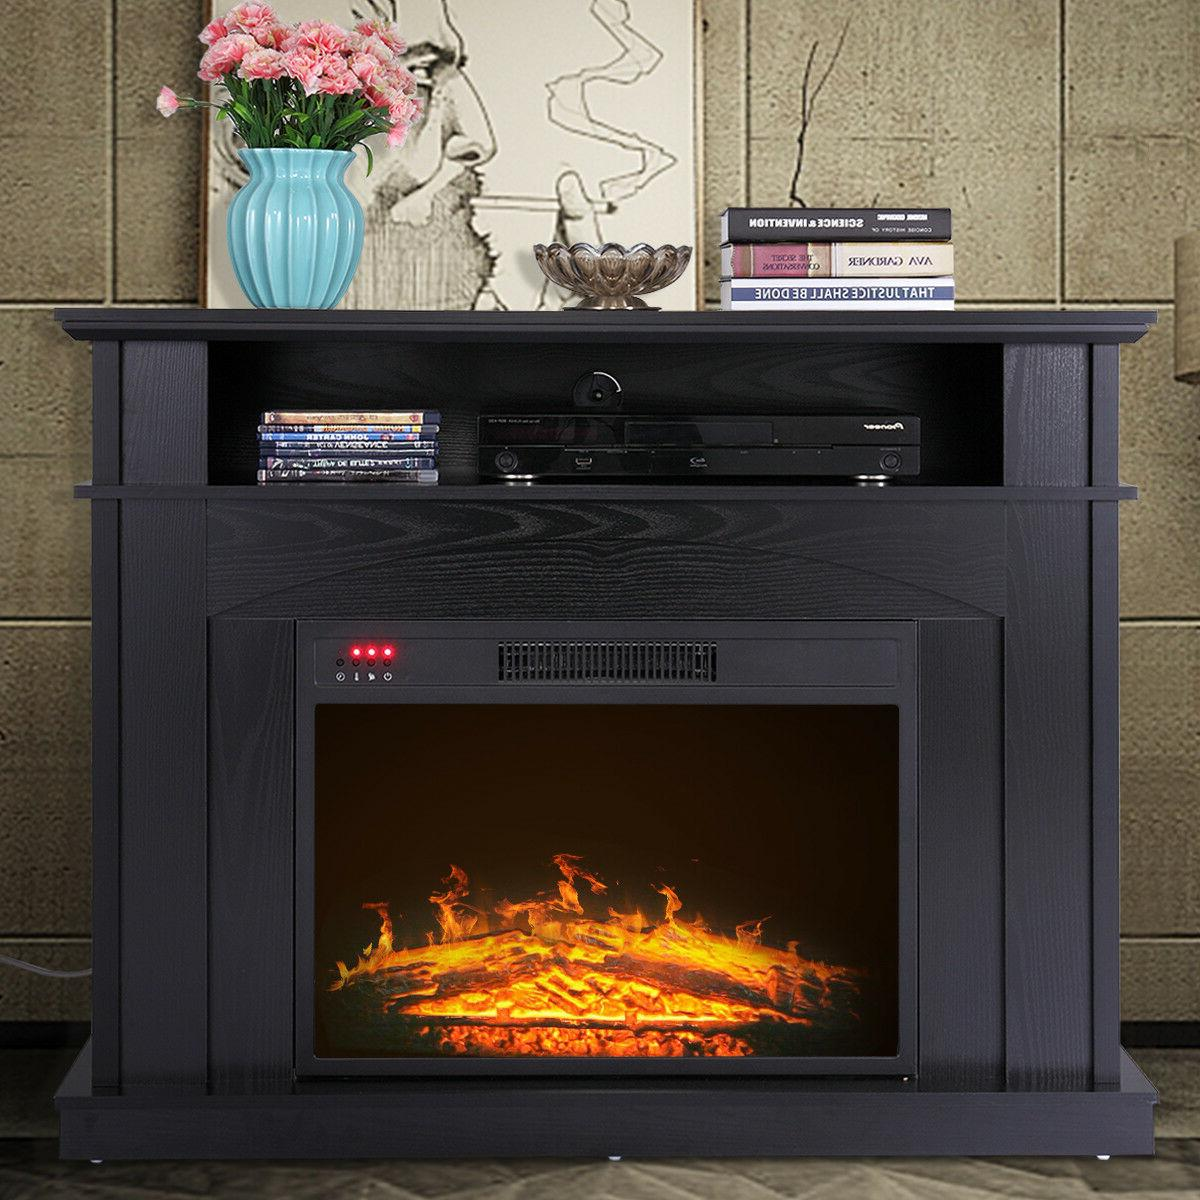 41 free standing 1500w electric fireplace tv